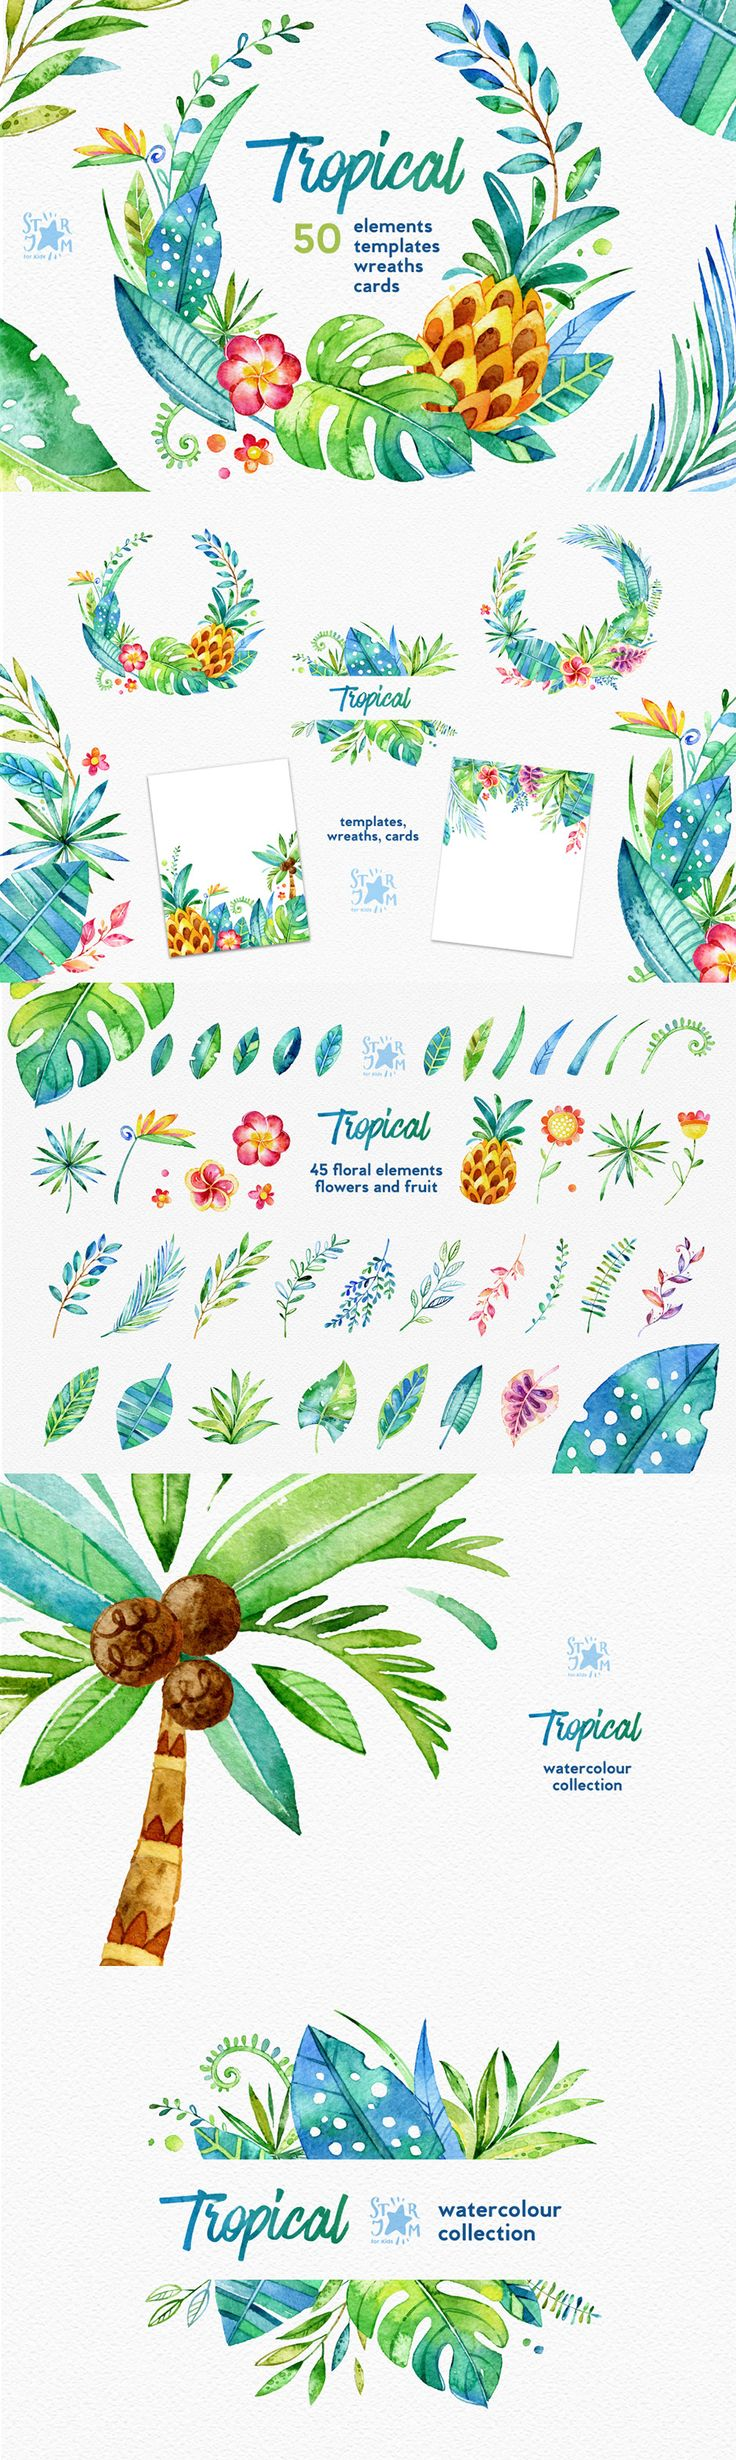 The Ultimate Artistic Design Bundle #DesignCuts #tropical #element #wreath…